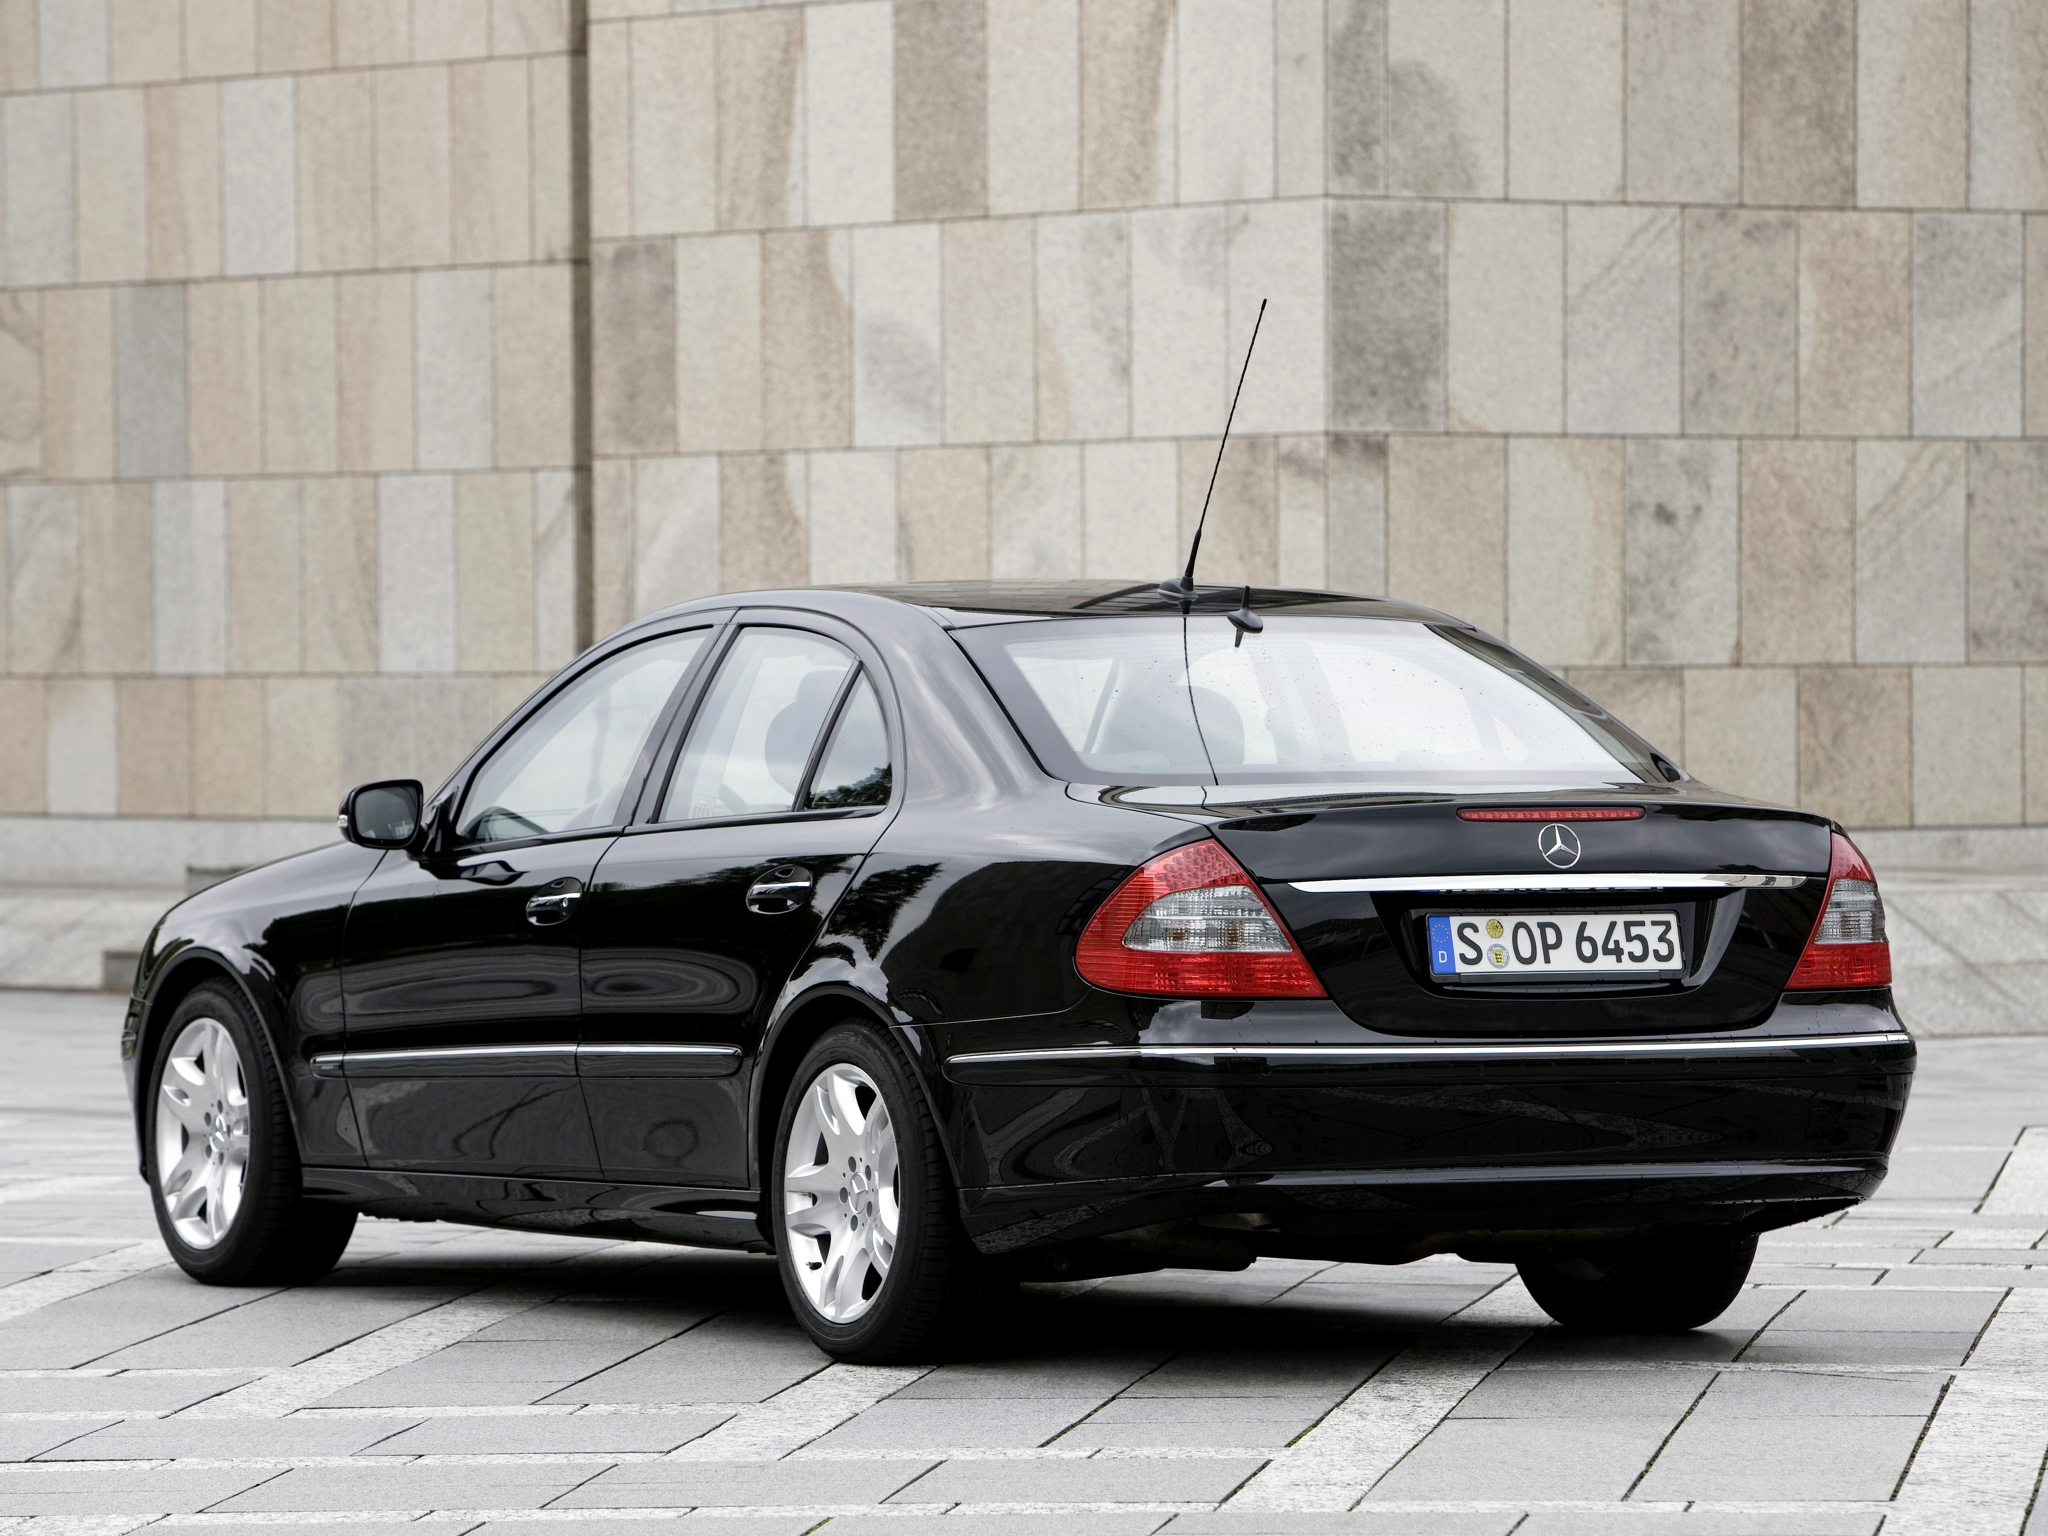 2006 armored mercedes benz e klasse guard w211 luxury for Mercedes benz armored